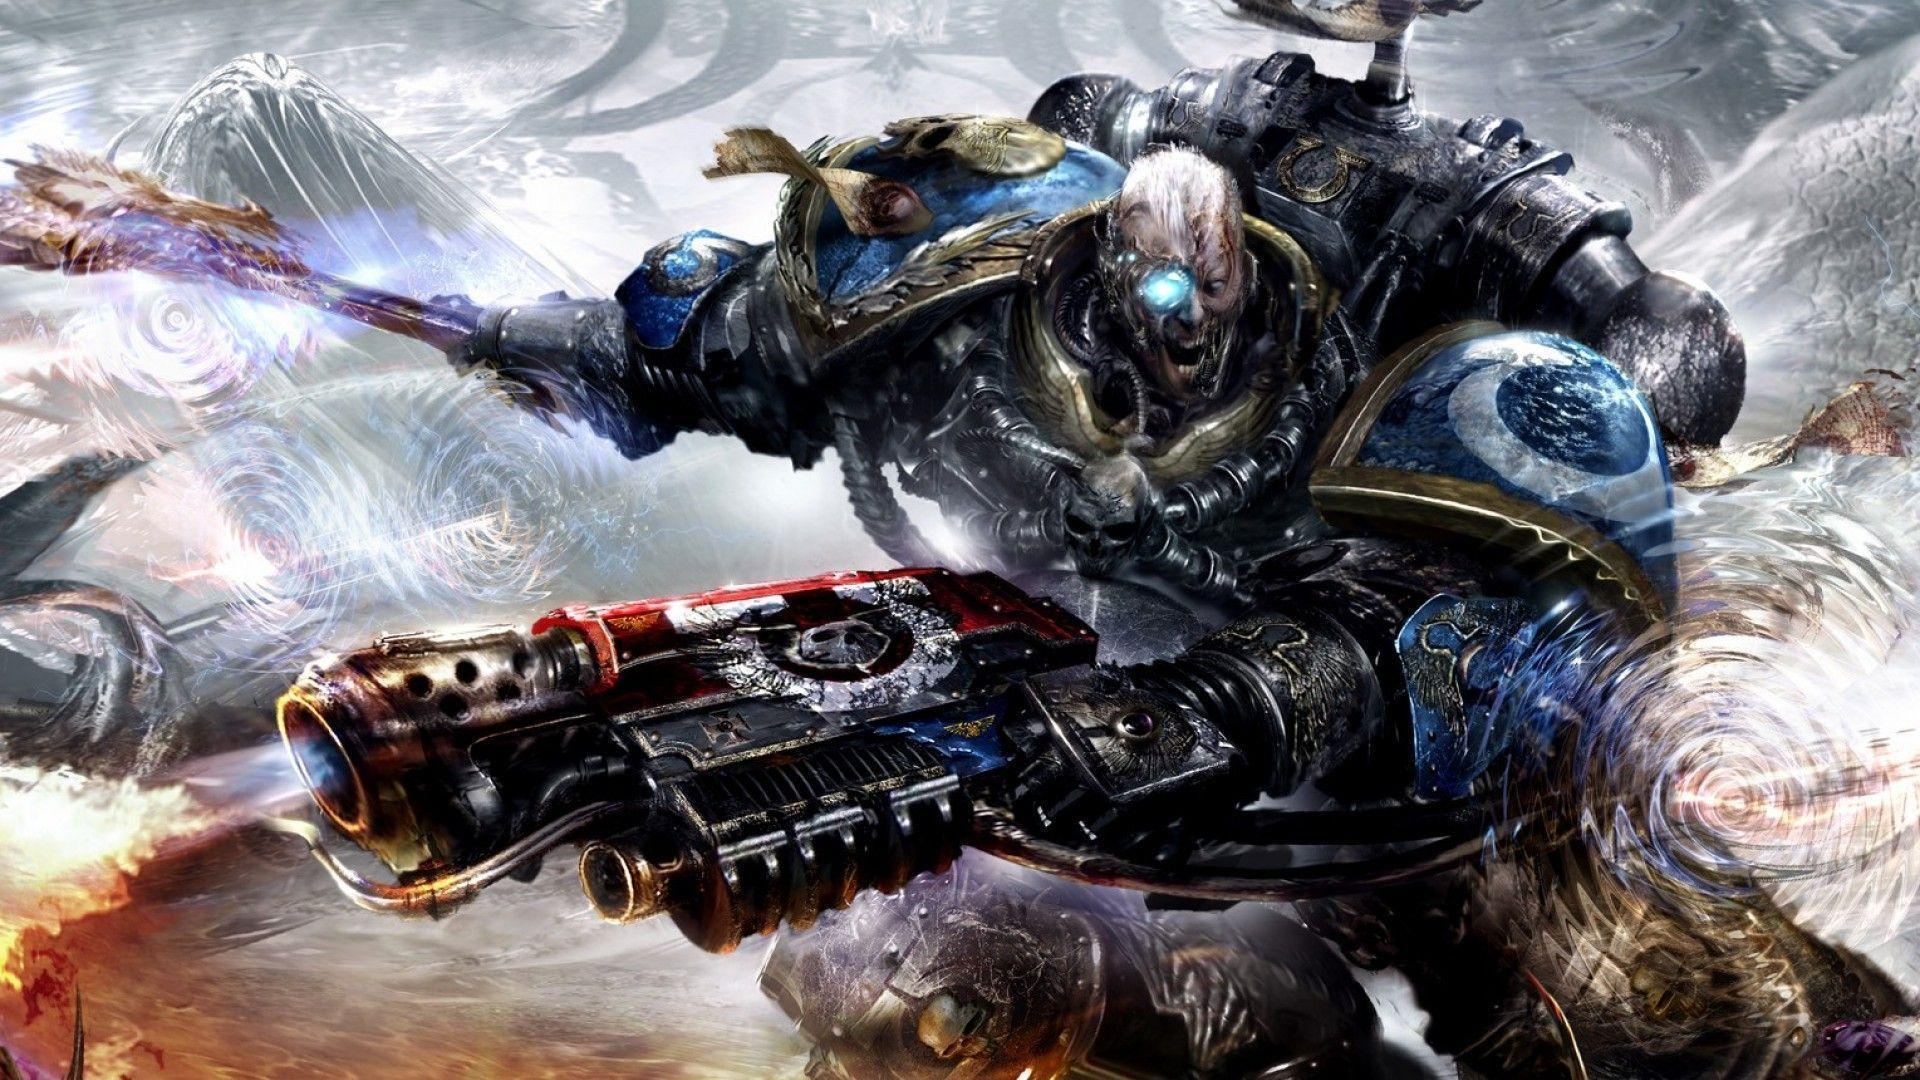 Free Download Chaos Space Marines Wallpapers 1920x1080 For